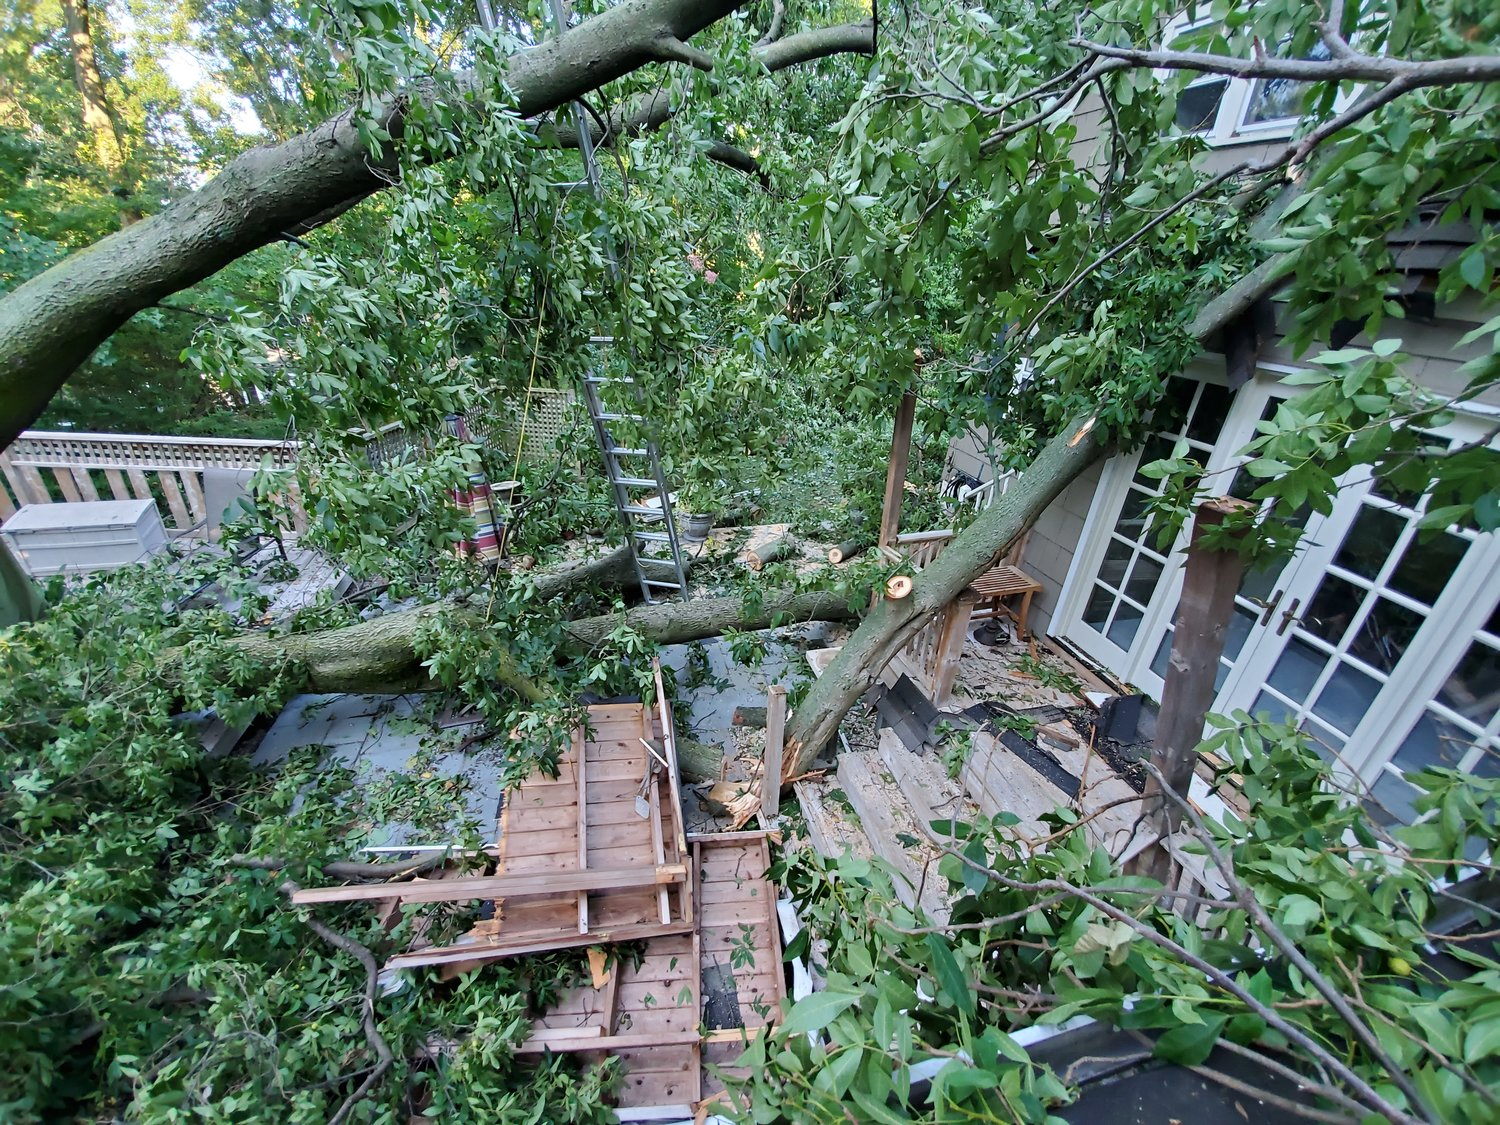 The back deck of a house on Woodridge Lane in Sea Cliff was heavily damaged by a fallen tree.